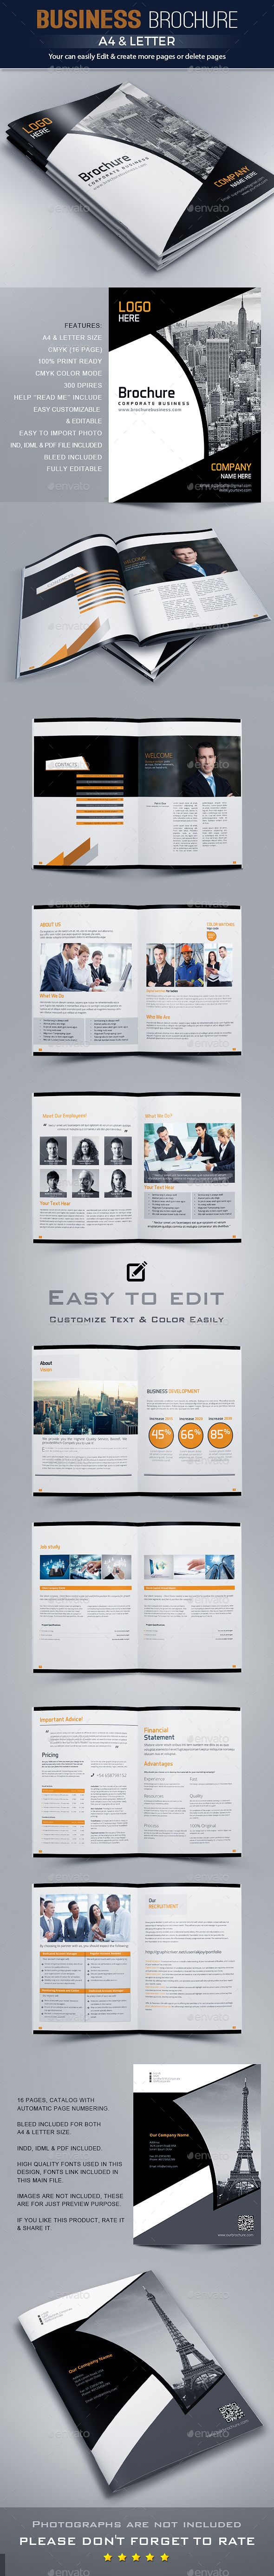 Brochure Template InDesign INDD | diseño | Pinterest | Arte gráfico ...